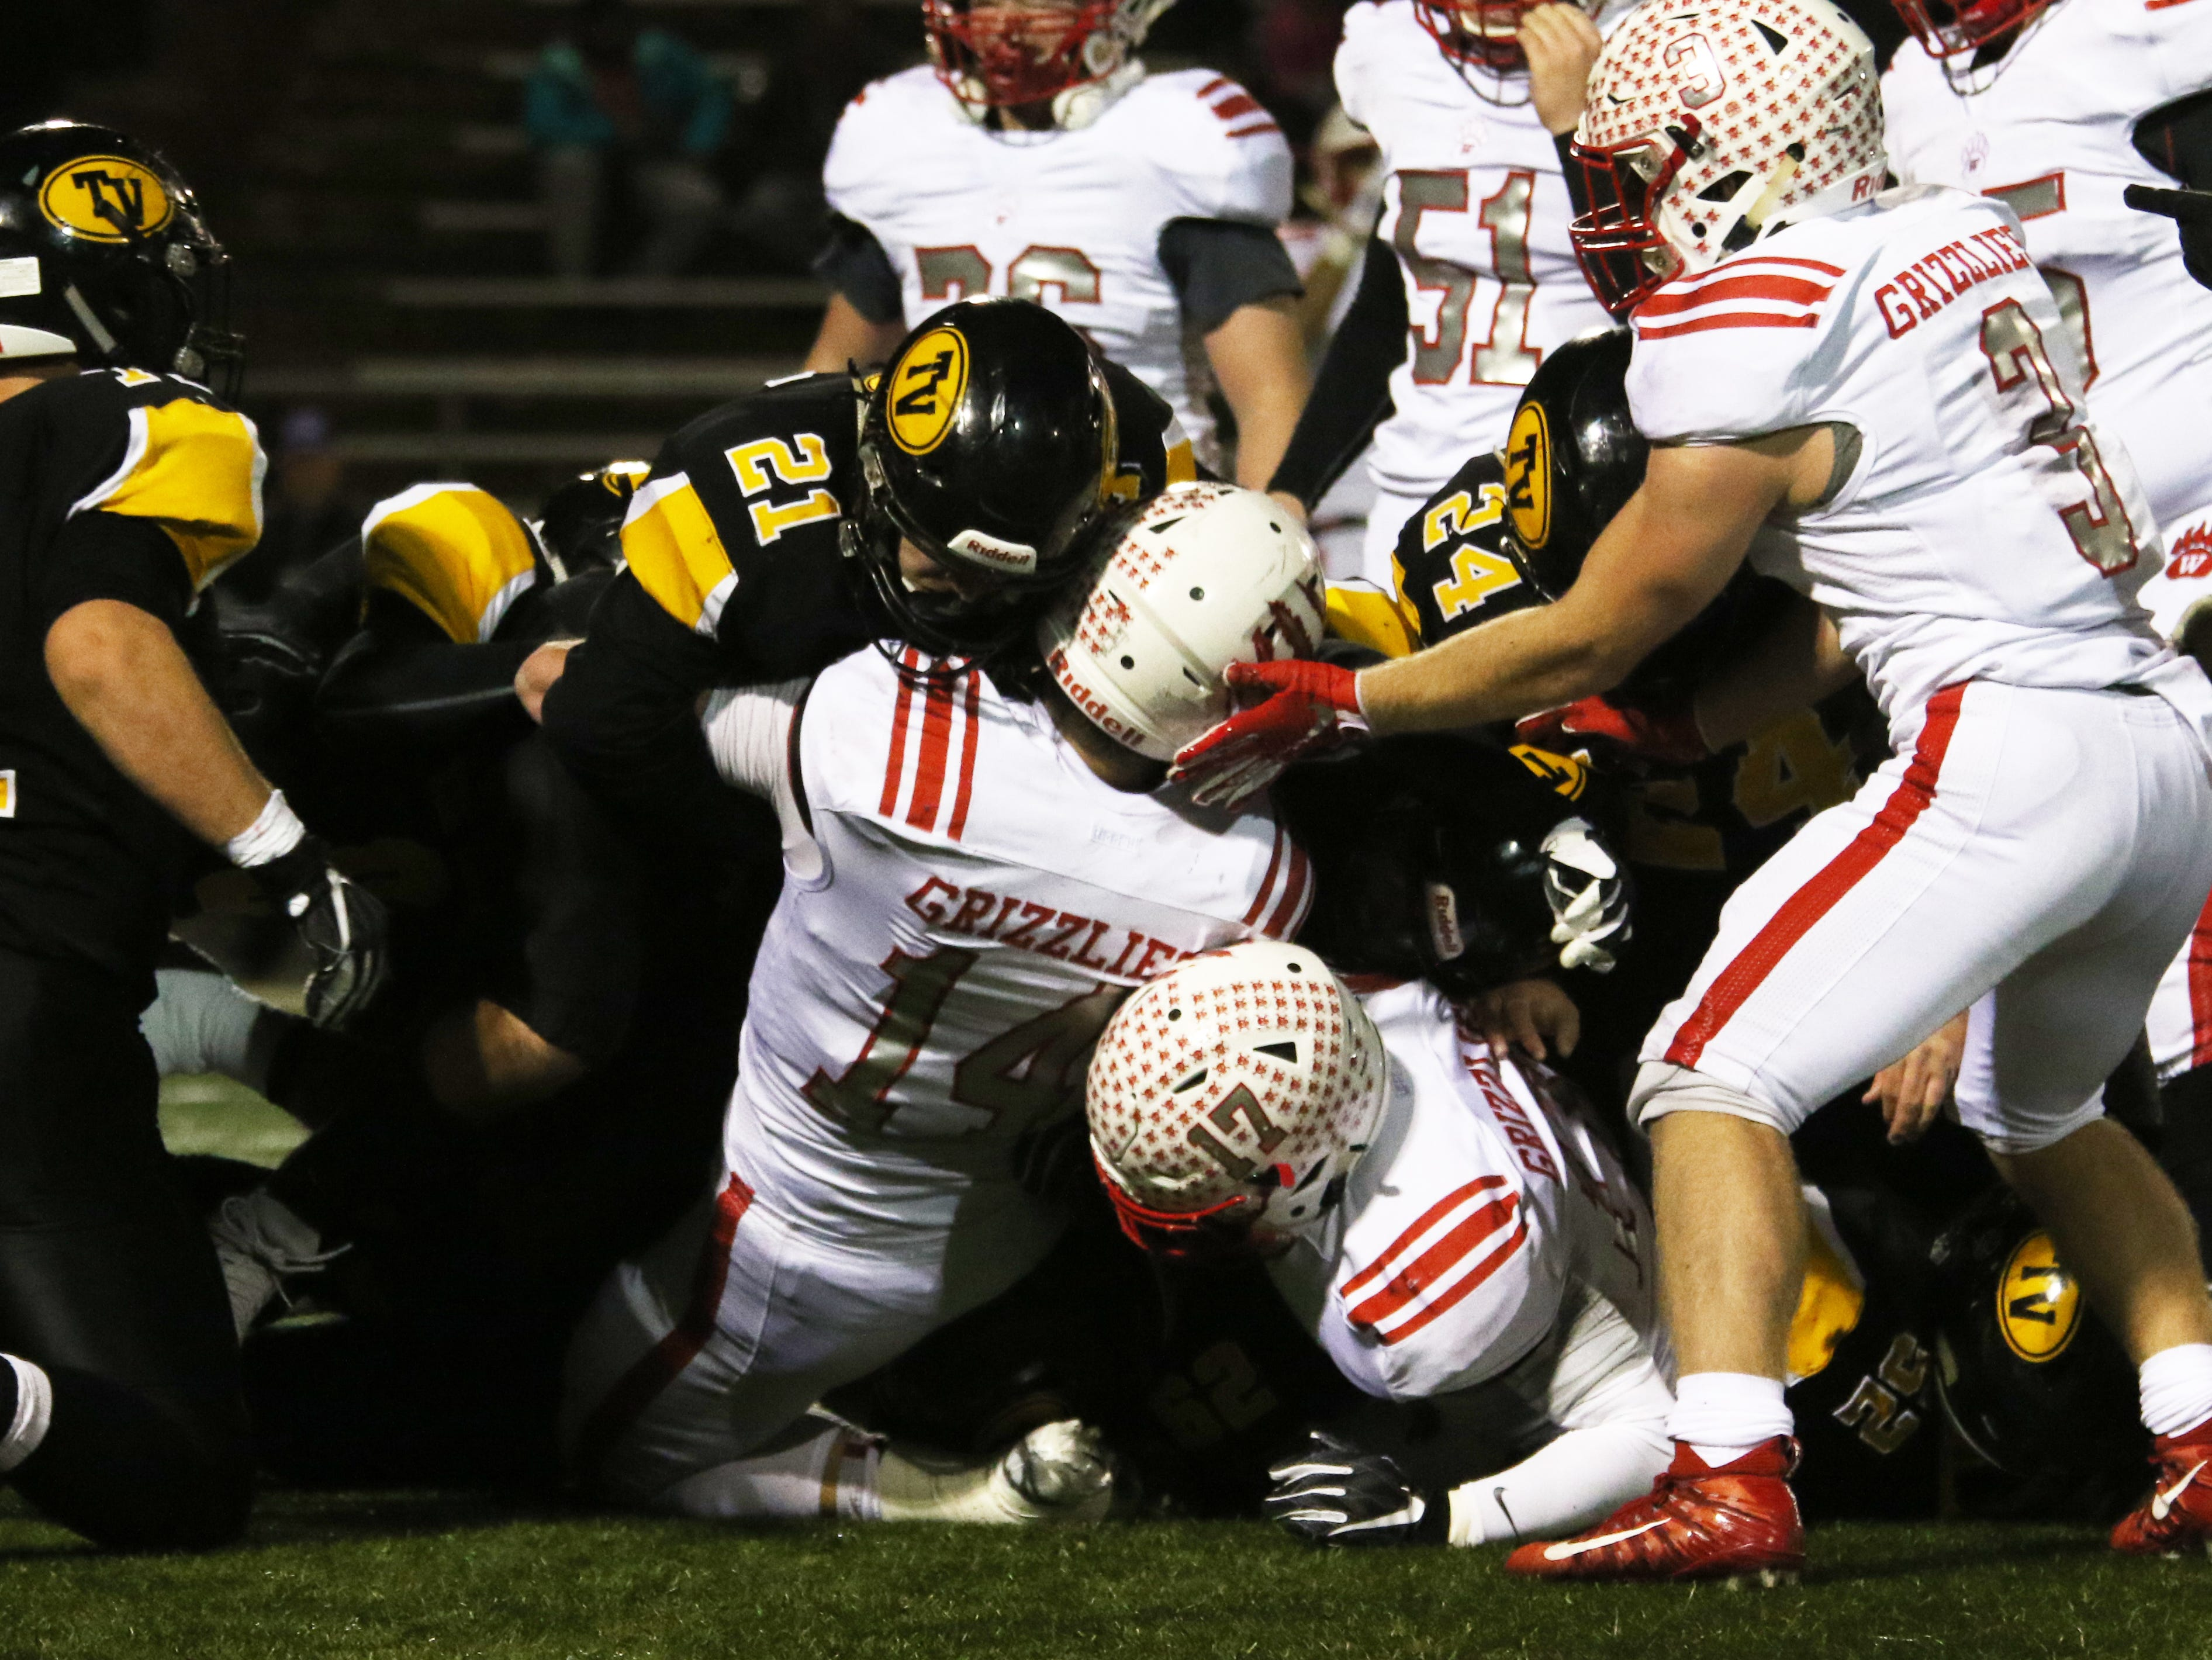 Tri-Valley converges on a Wadsworth ball carrier. In on the action are Blake Kendrick (21) and Chase Kendrick (24).